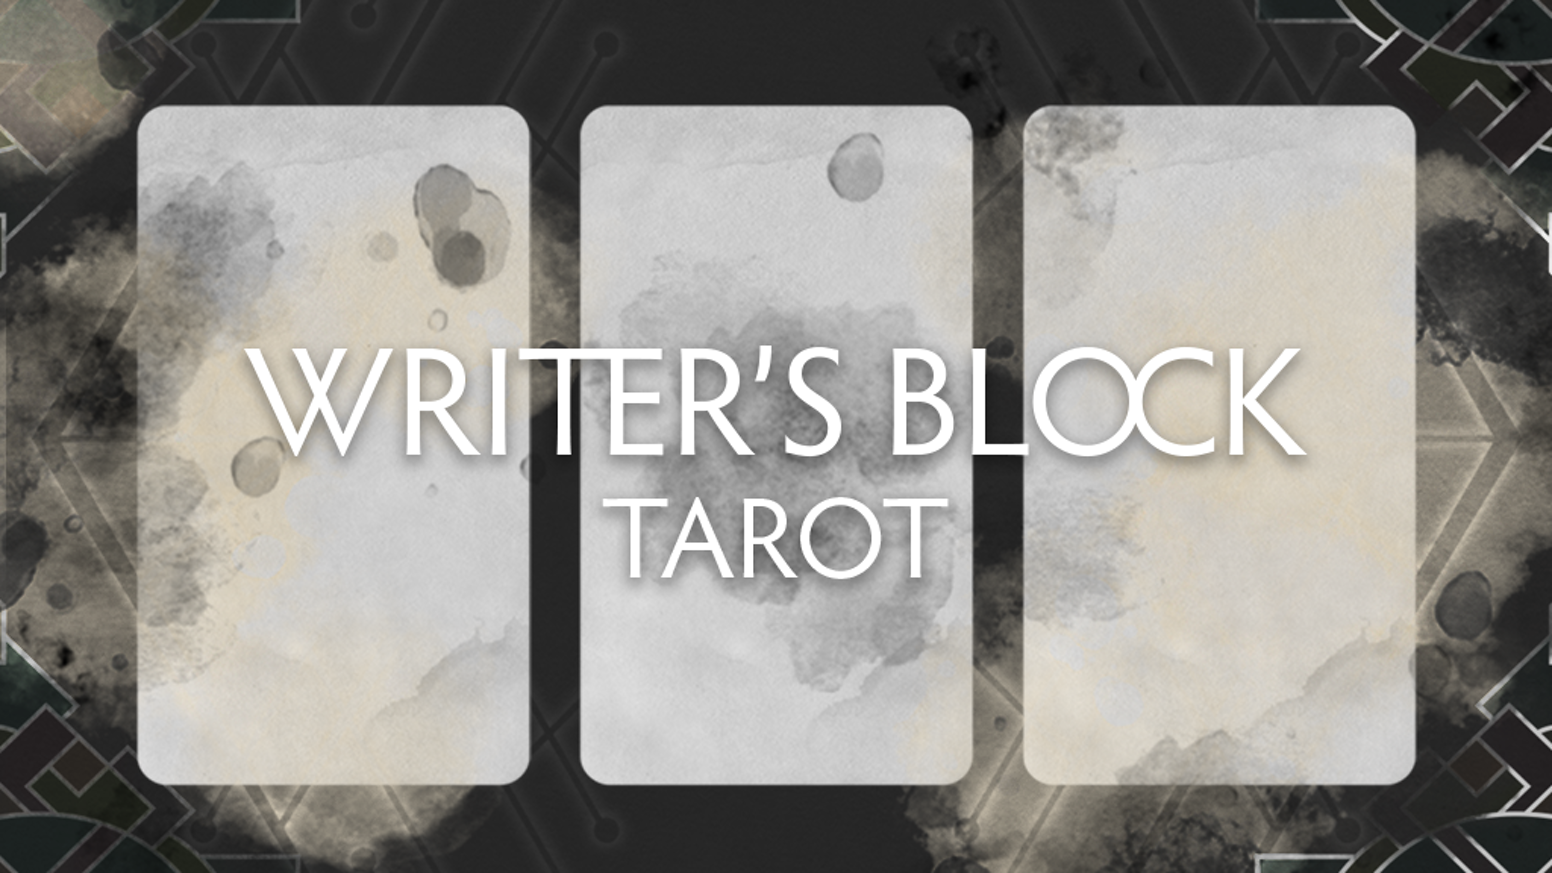 Tarot tells a story. Use this deck to break your writers block. Create stronger plots, more complex characters, and dynamic conflicts.